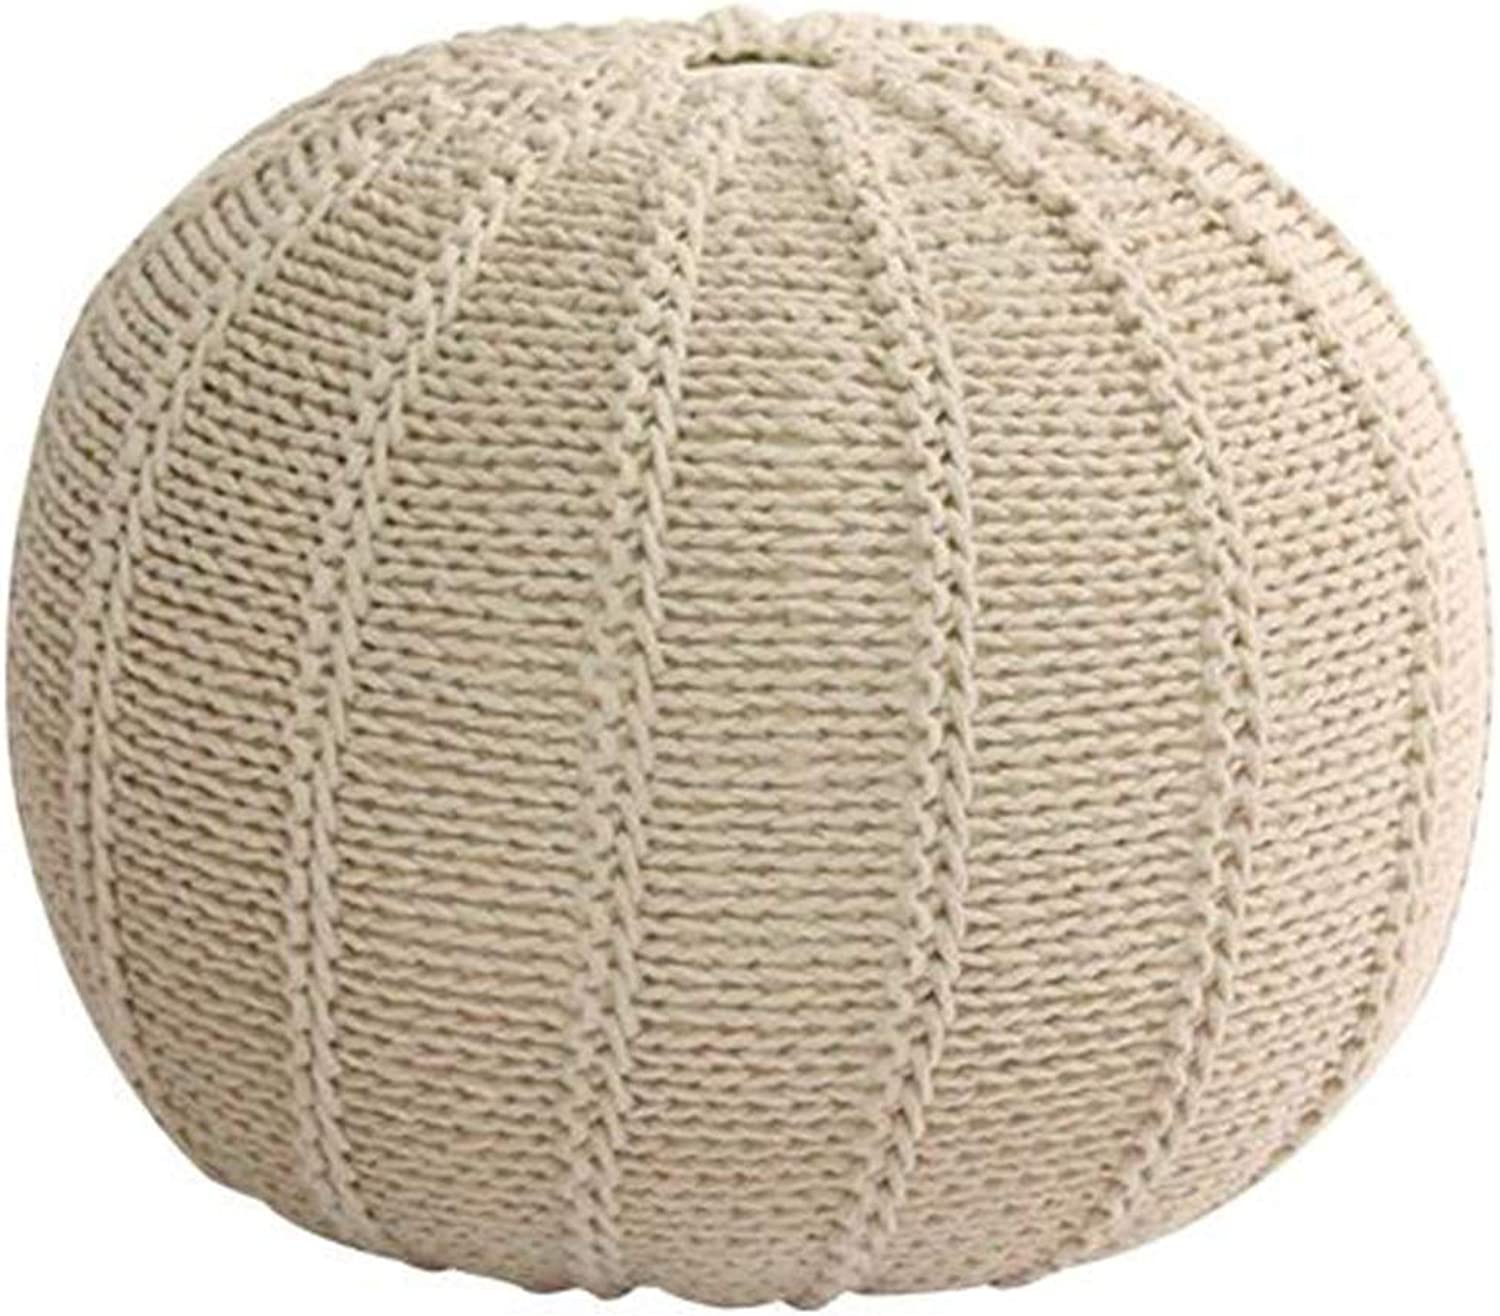 Foot Stool Braided Cushion Home Round Seat Rest Cotton Handmade, 8 colors ( color   Brown A )